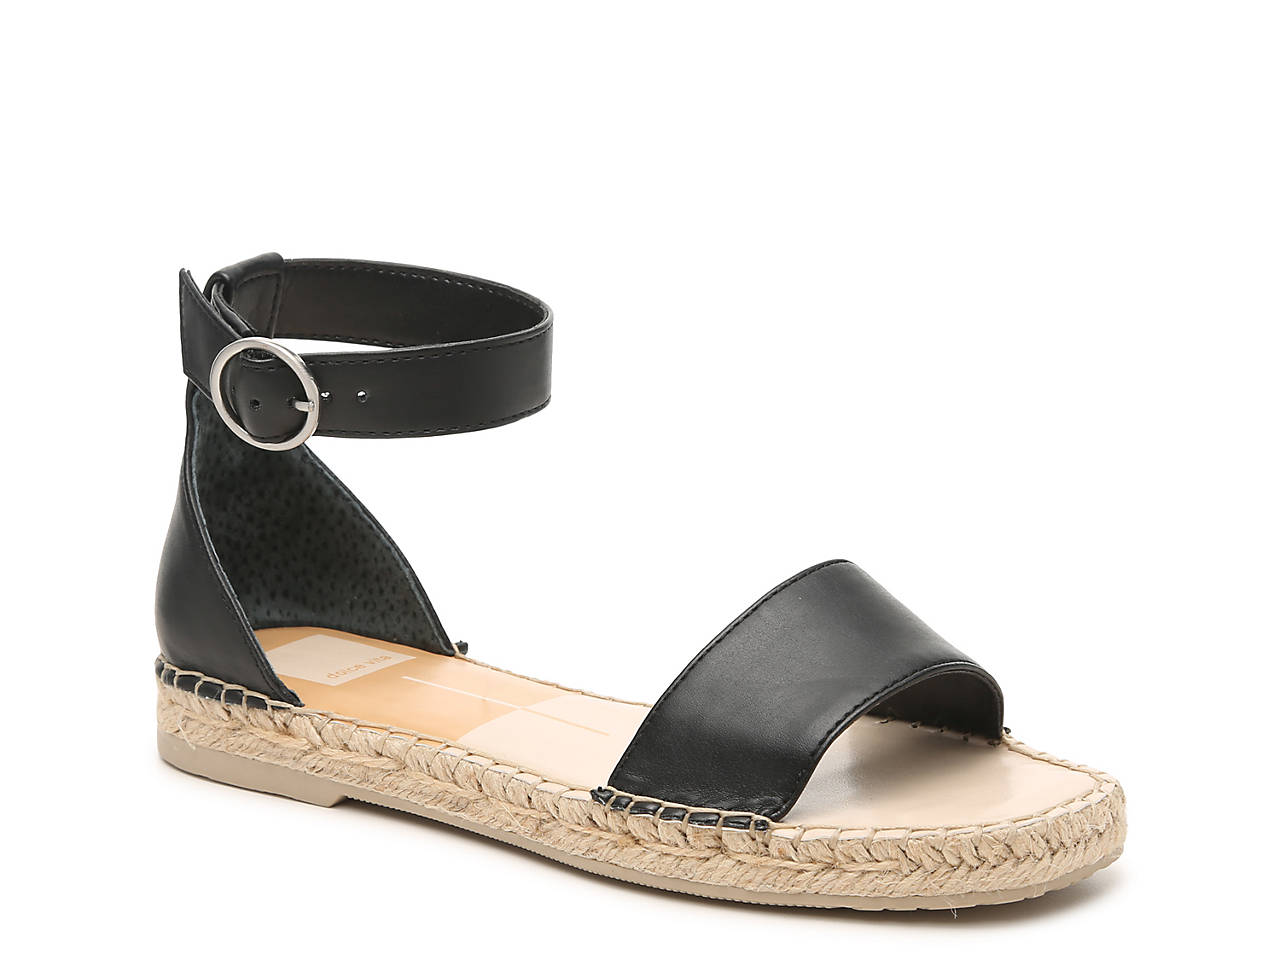 a7f9db415 Dolce Vita Blair Espadrille Sandal Women s Shoes